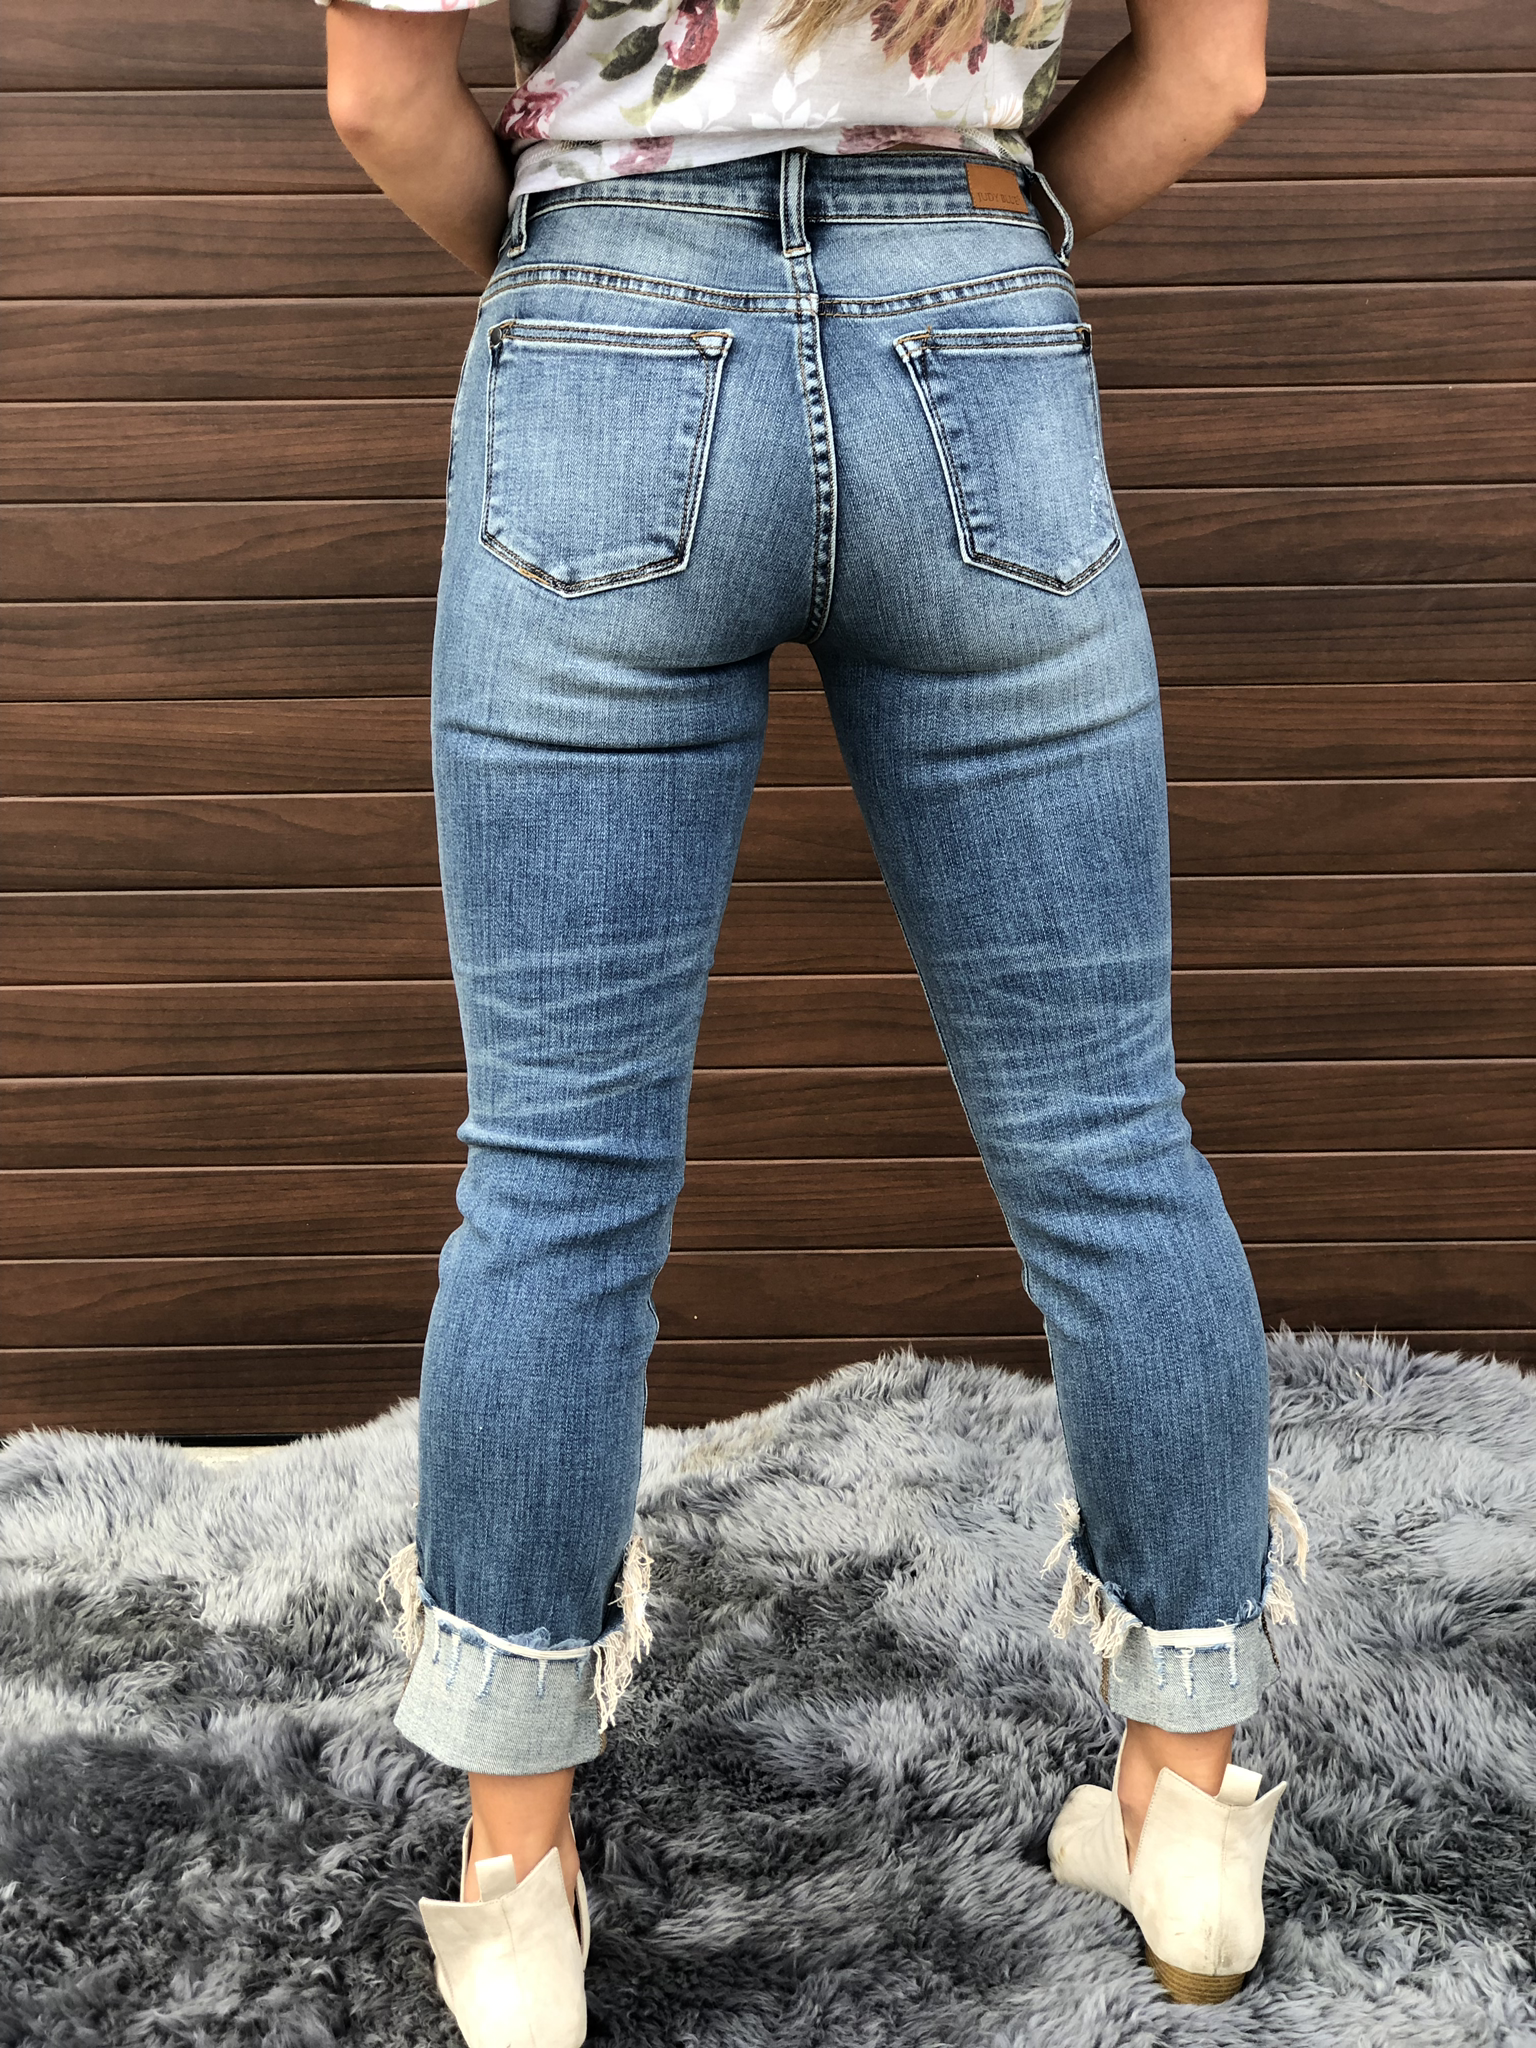 Judy Blue relaxed fit cuffed jean